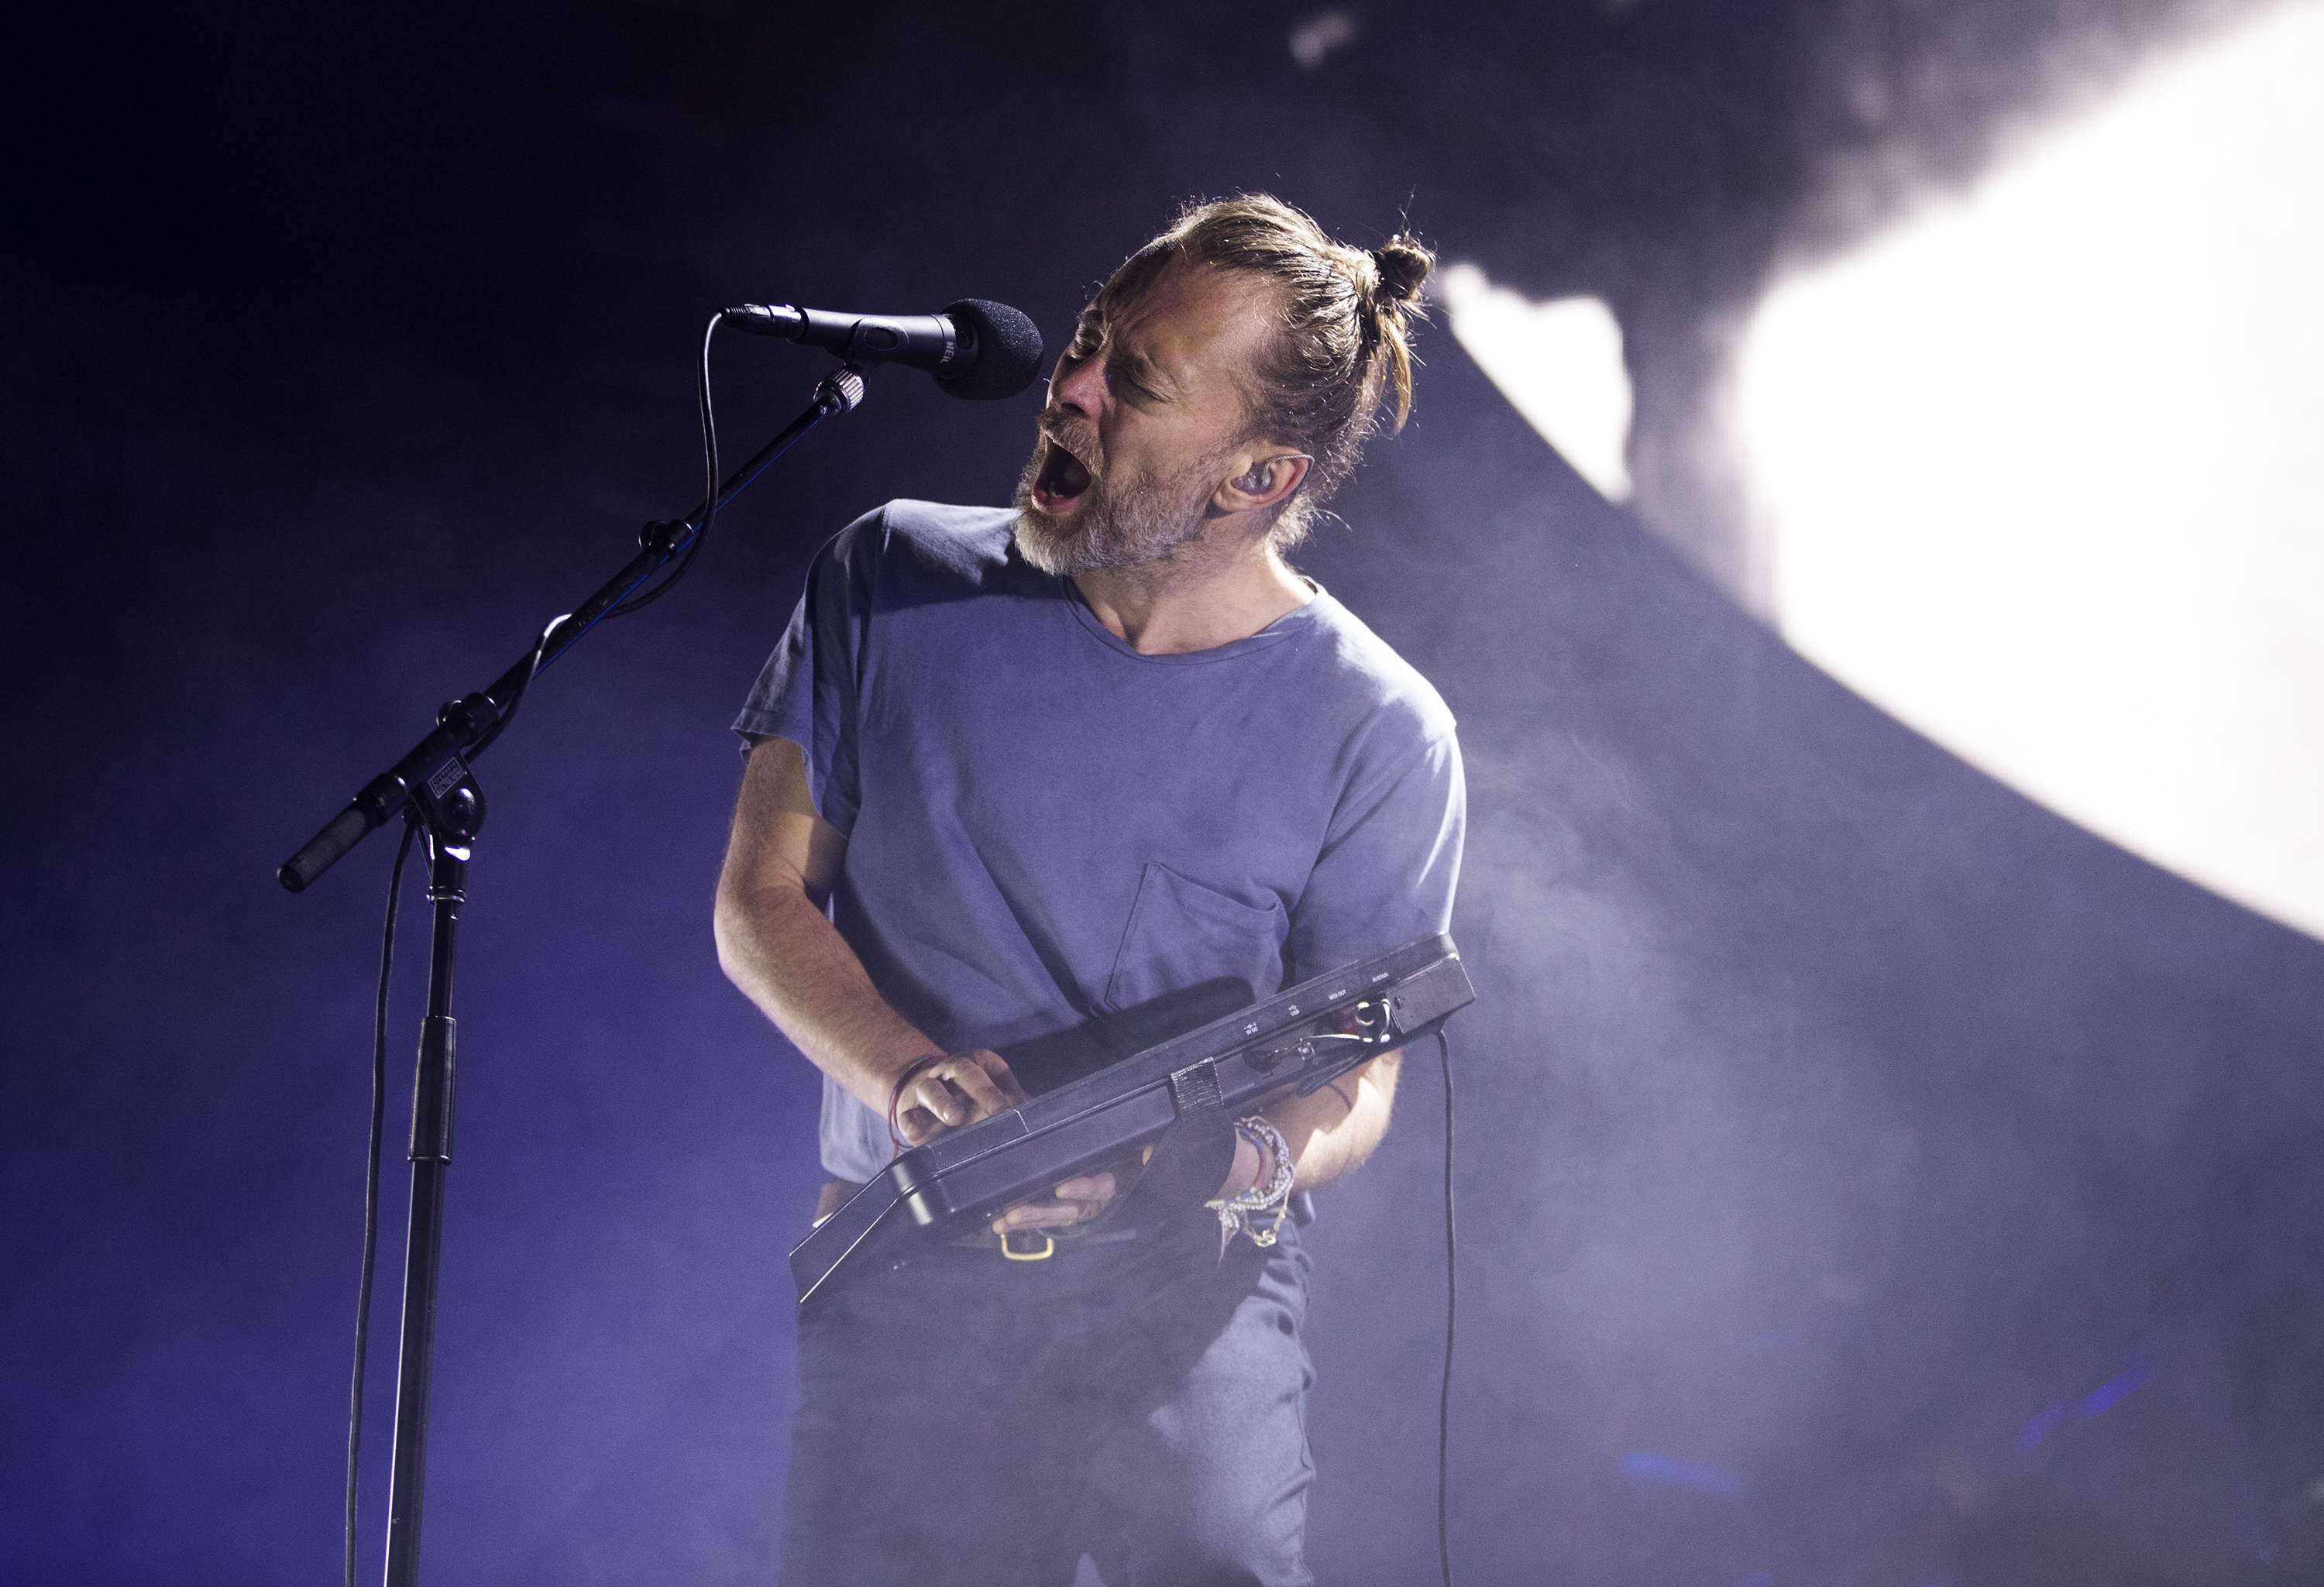 Thom Yorke of Radiohead performs at Wells Fargo Center on July 31, 2018. CHARLES FOX / Staff Photographer